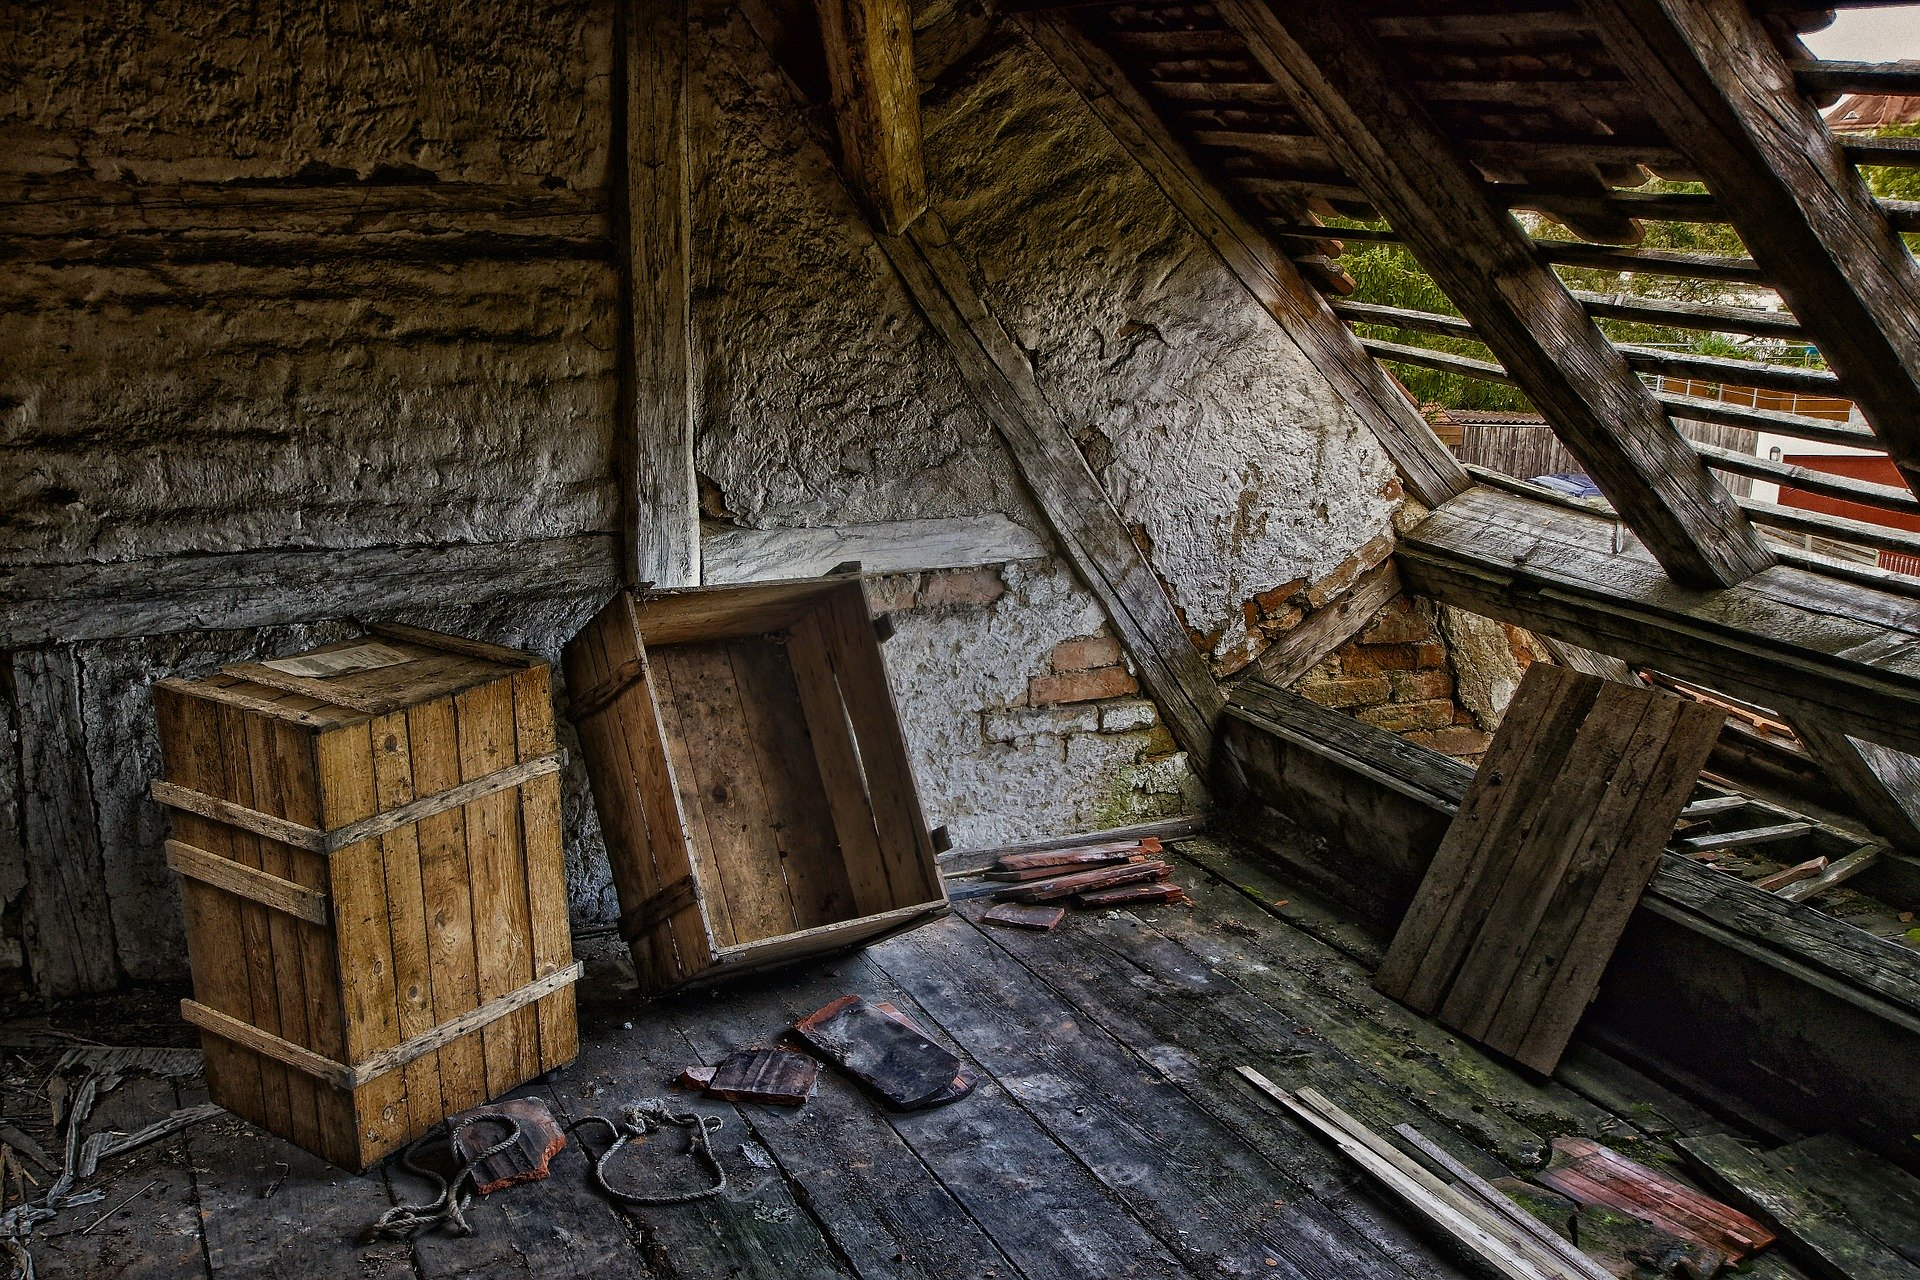 wooden-crates-in-a-shed